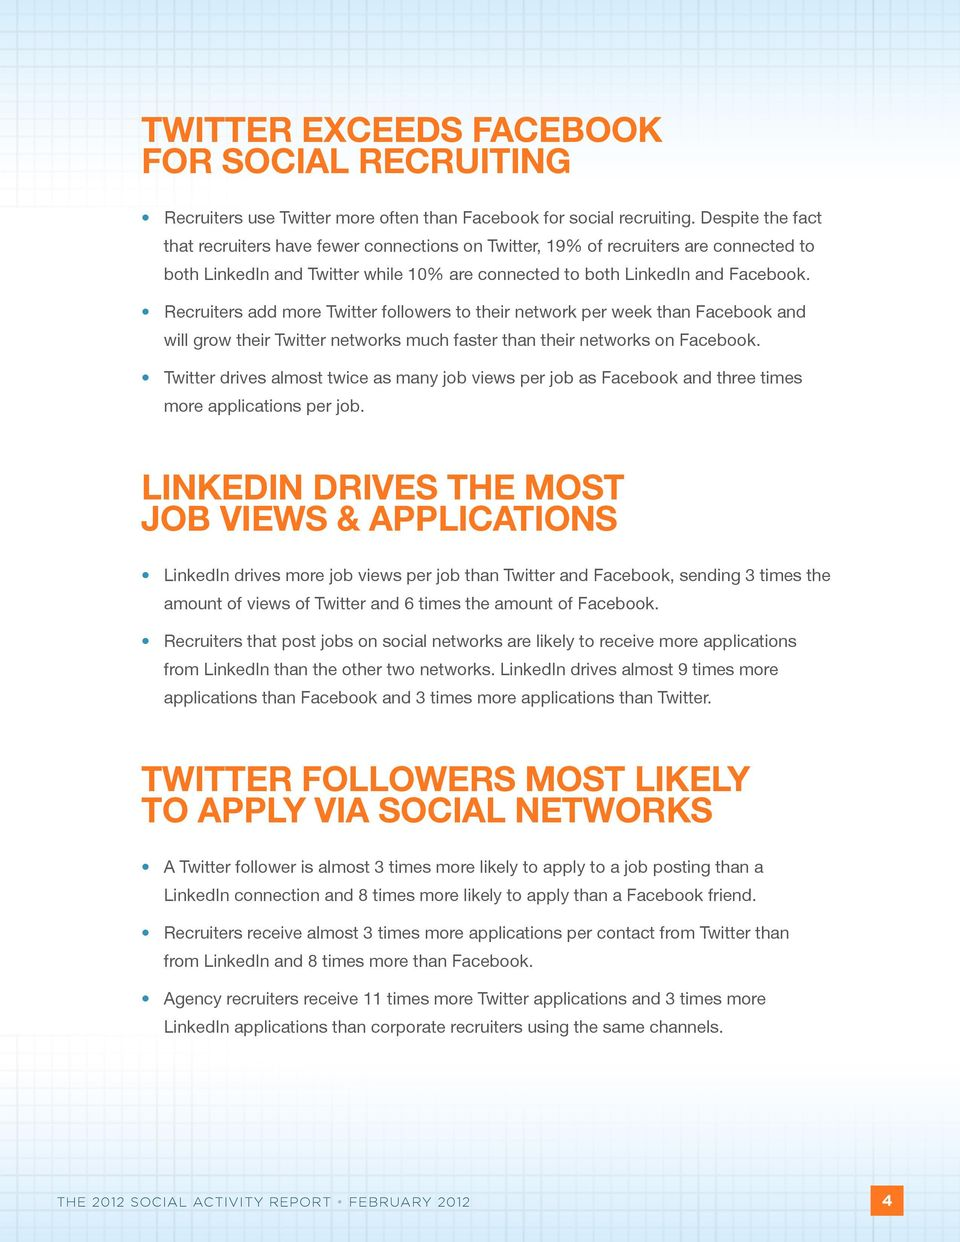 Recruiters add more Twitter followers to their network per week than Facebook and will grow their Twitter networks much faster than their networks on Facebook.